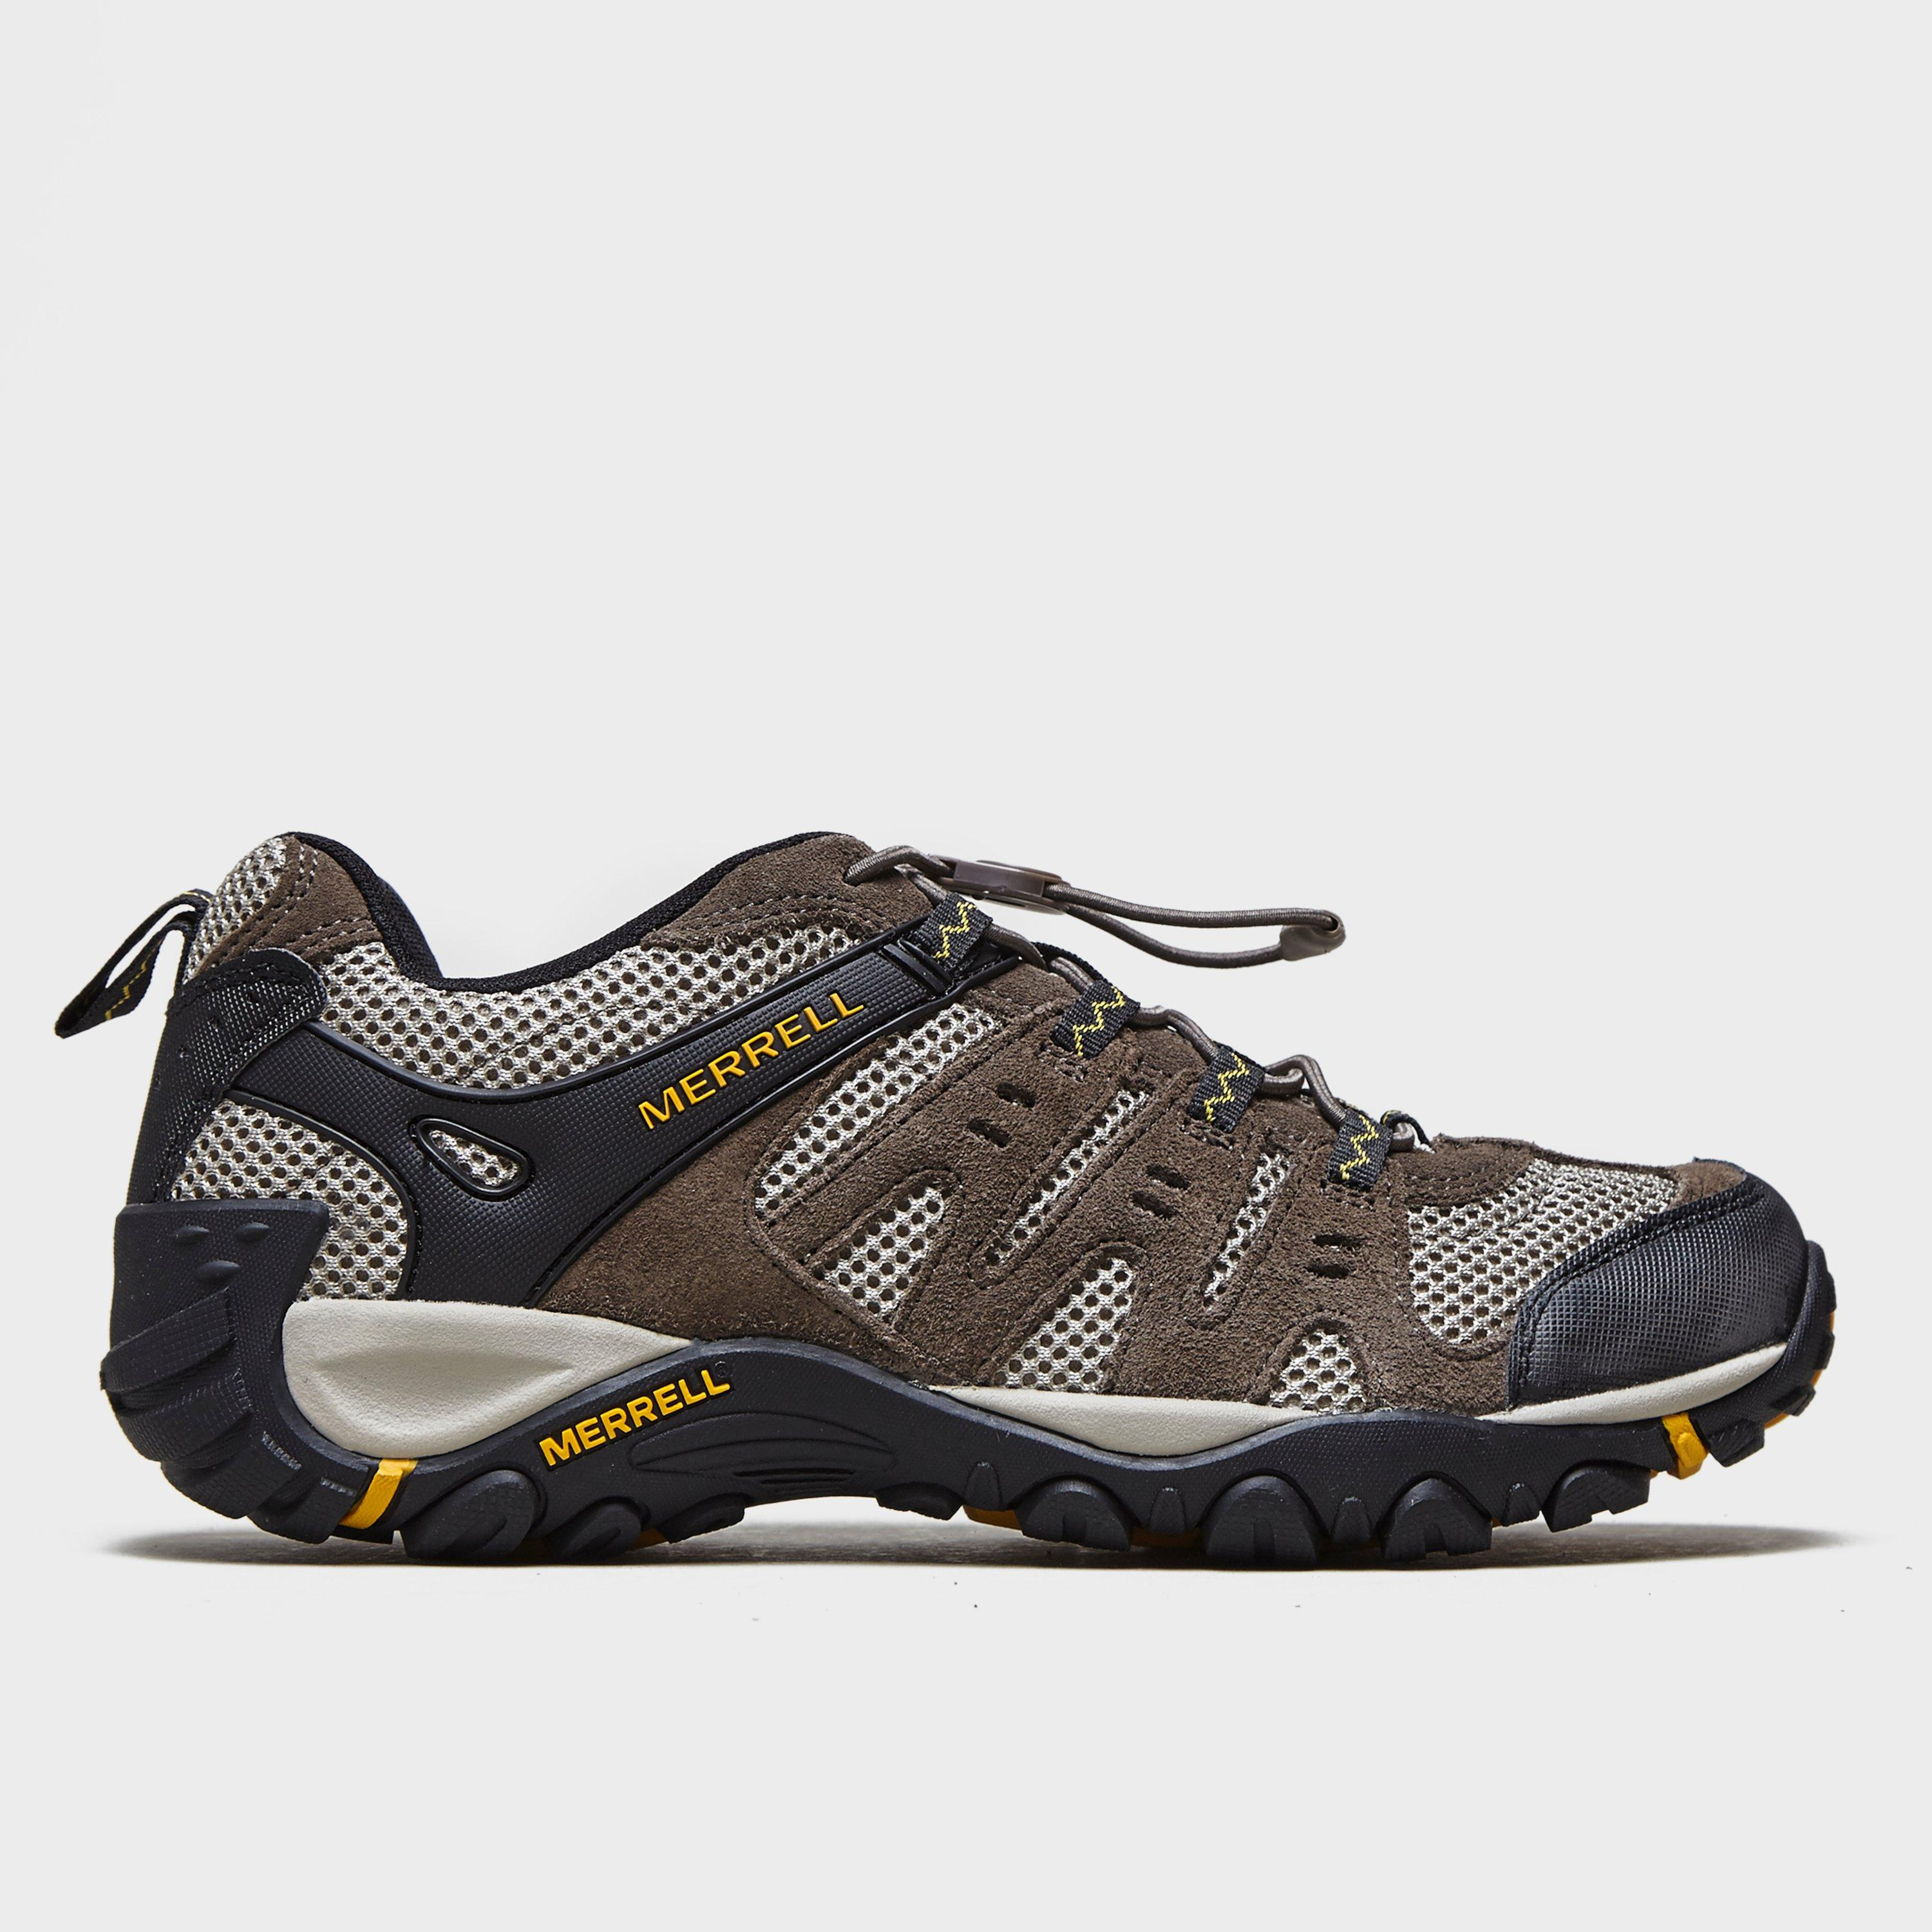 ac1a16503f Details about New Merrell Men s Accentor Stretch Walking Shoe Walking Boots